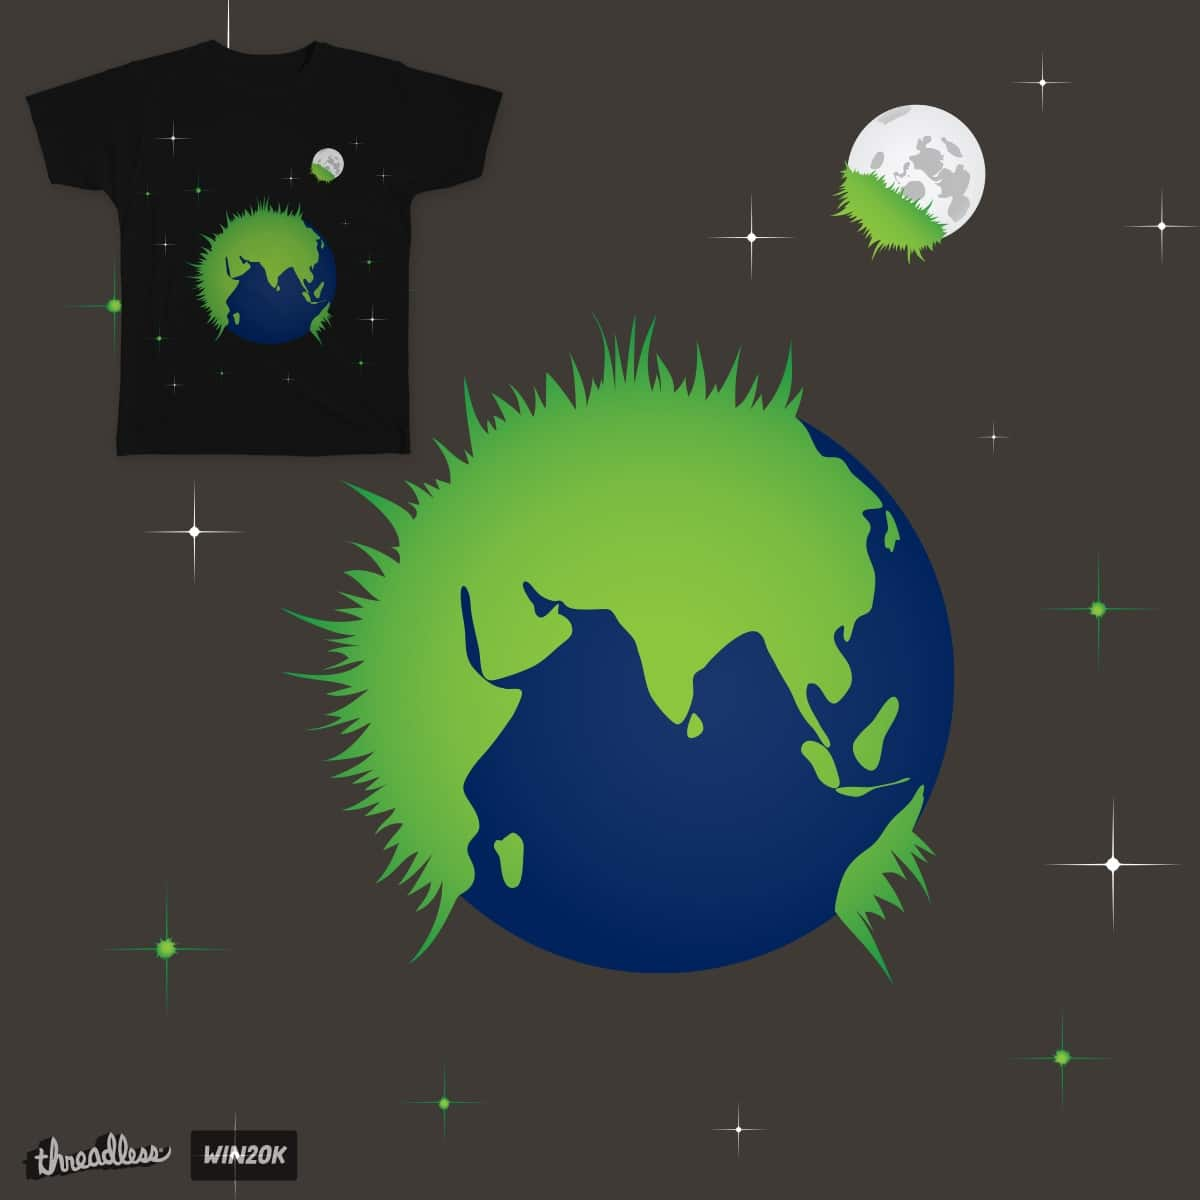 Going Green is Contagious by elysian_visions on Threadless